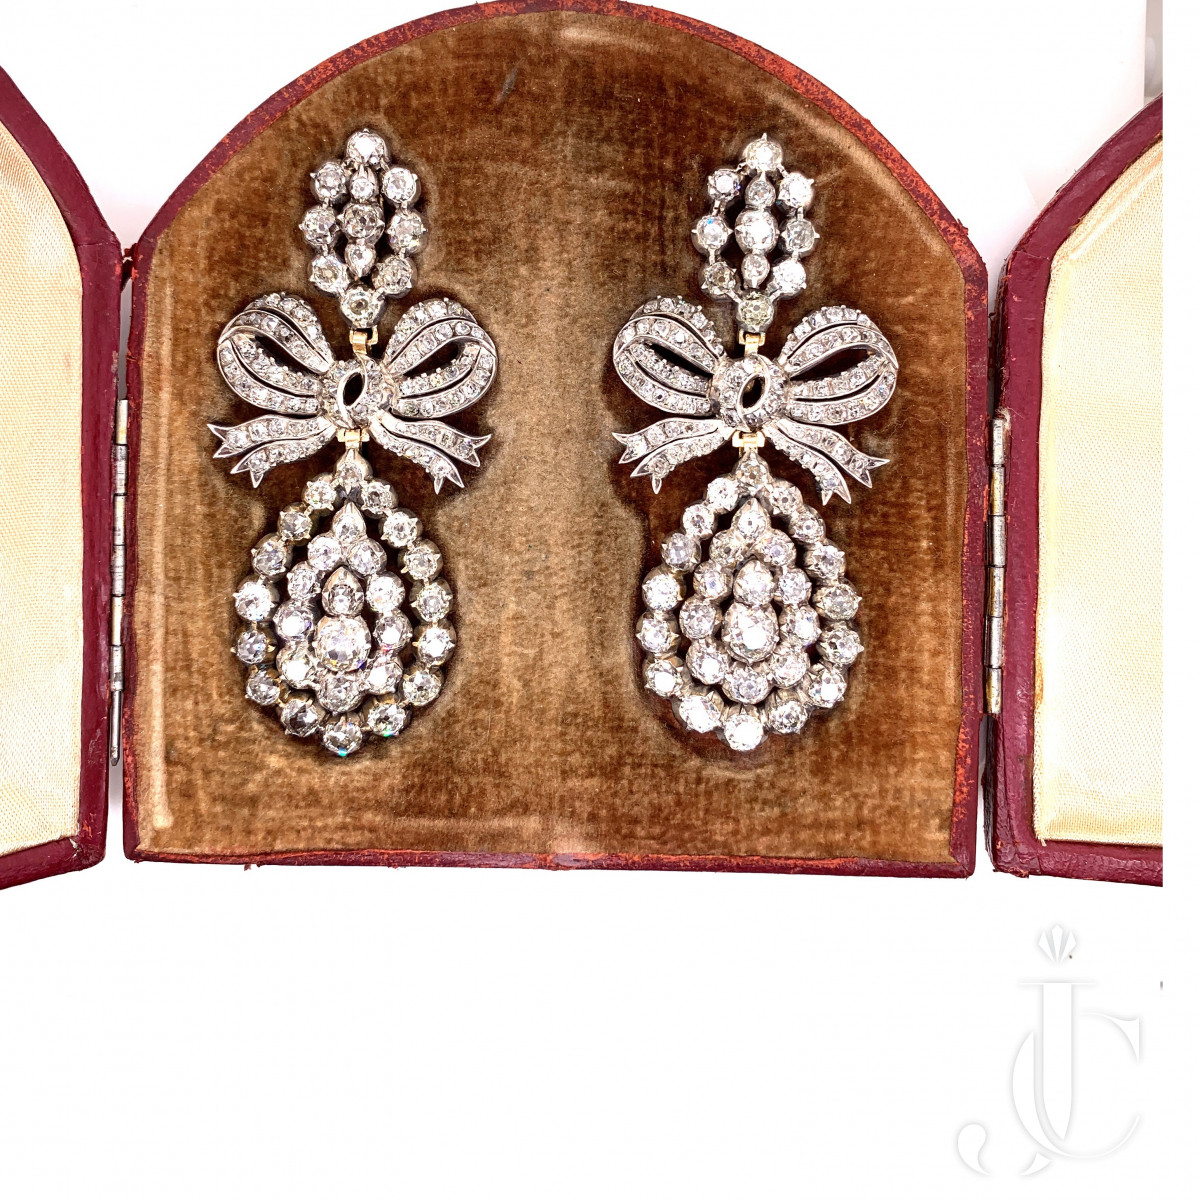 A pair of silver and gold earrings, circa 1820